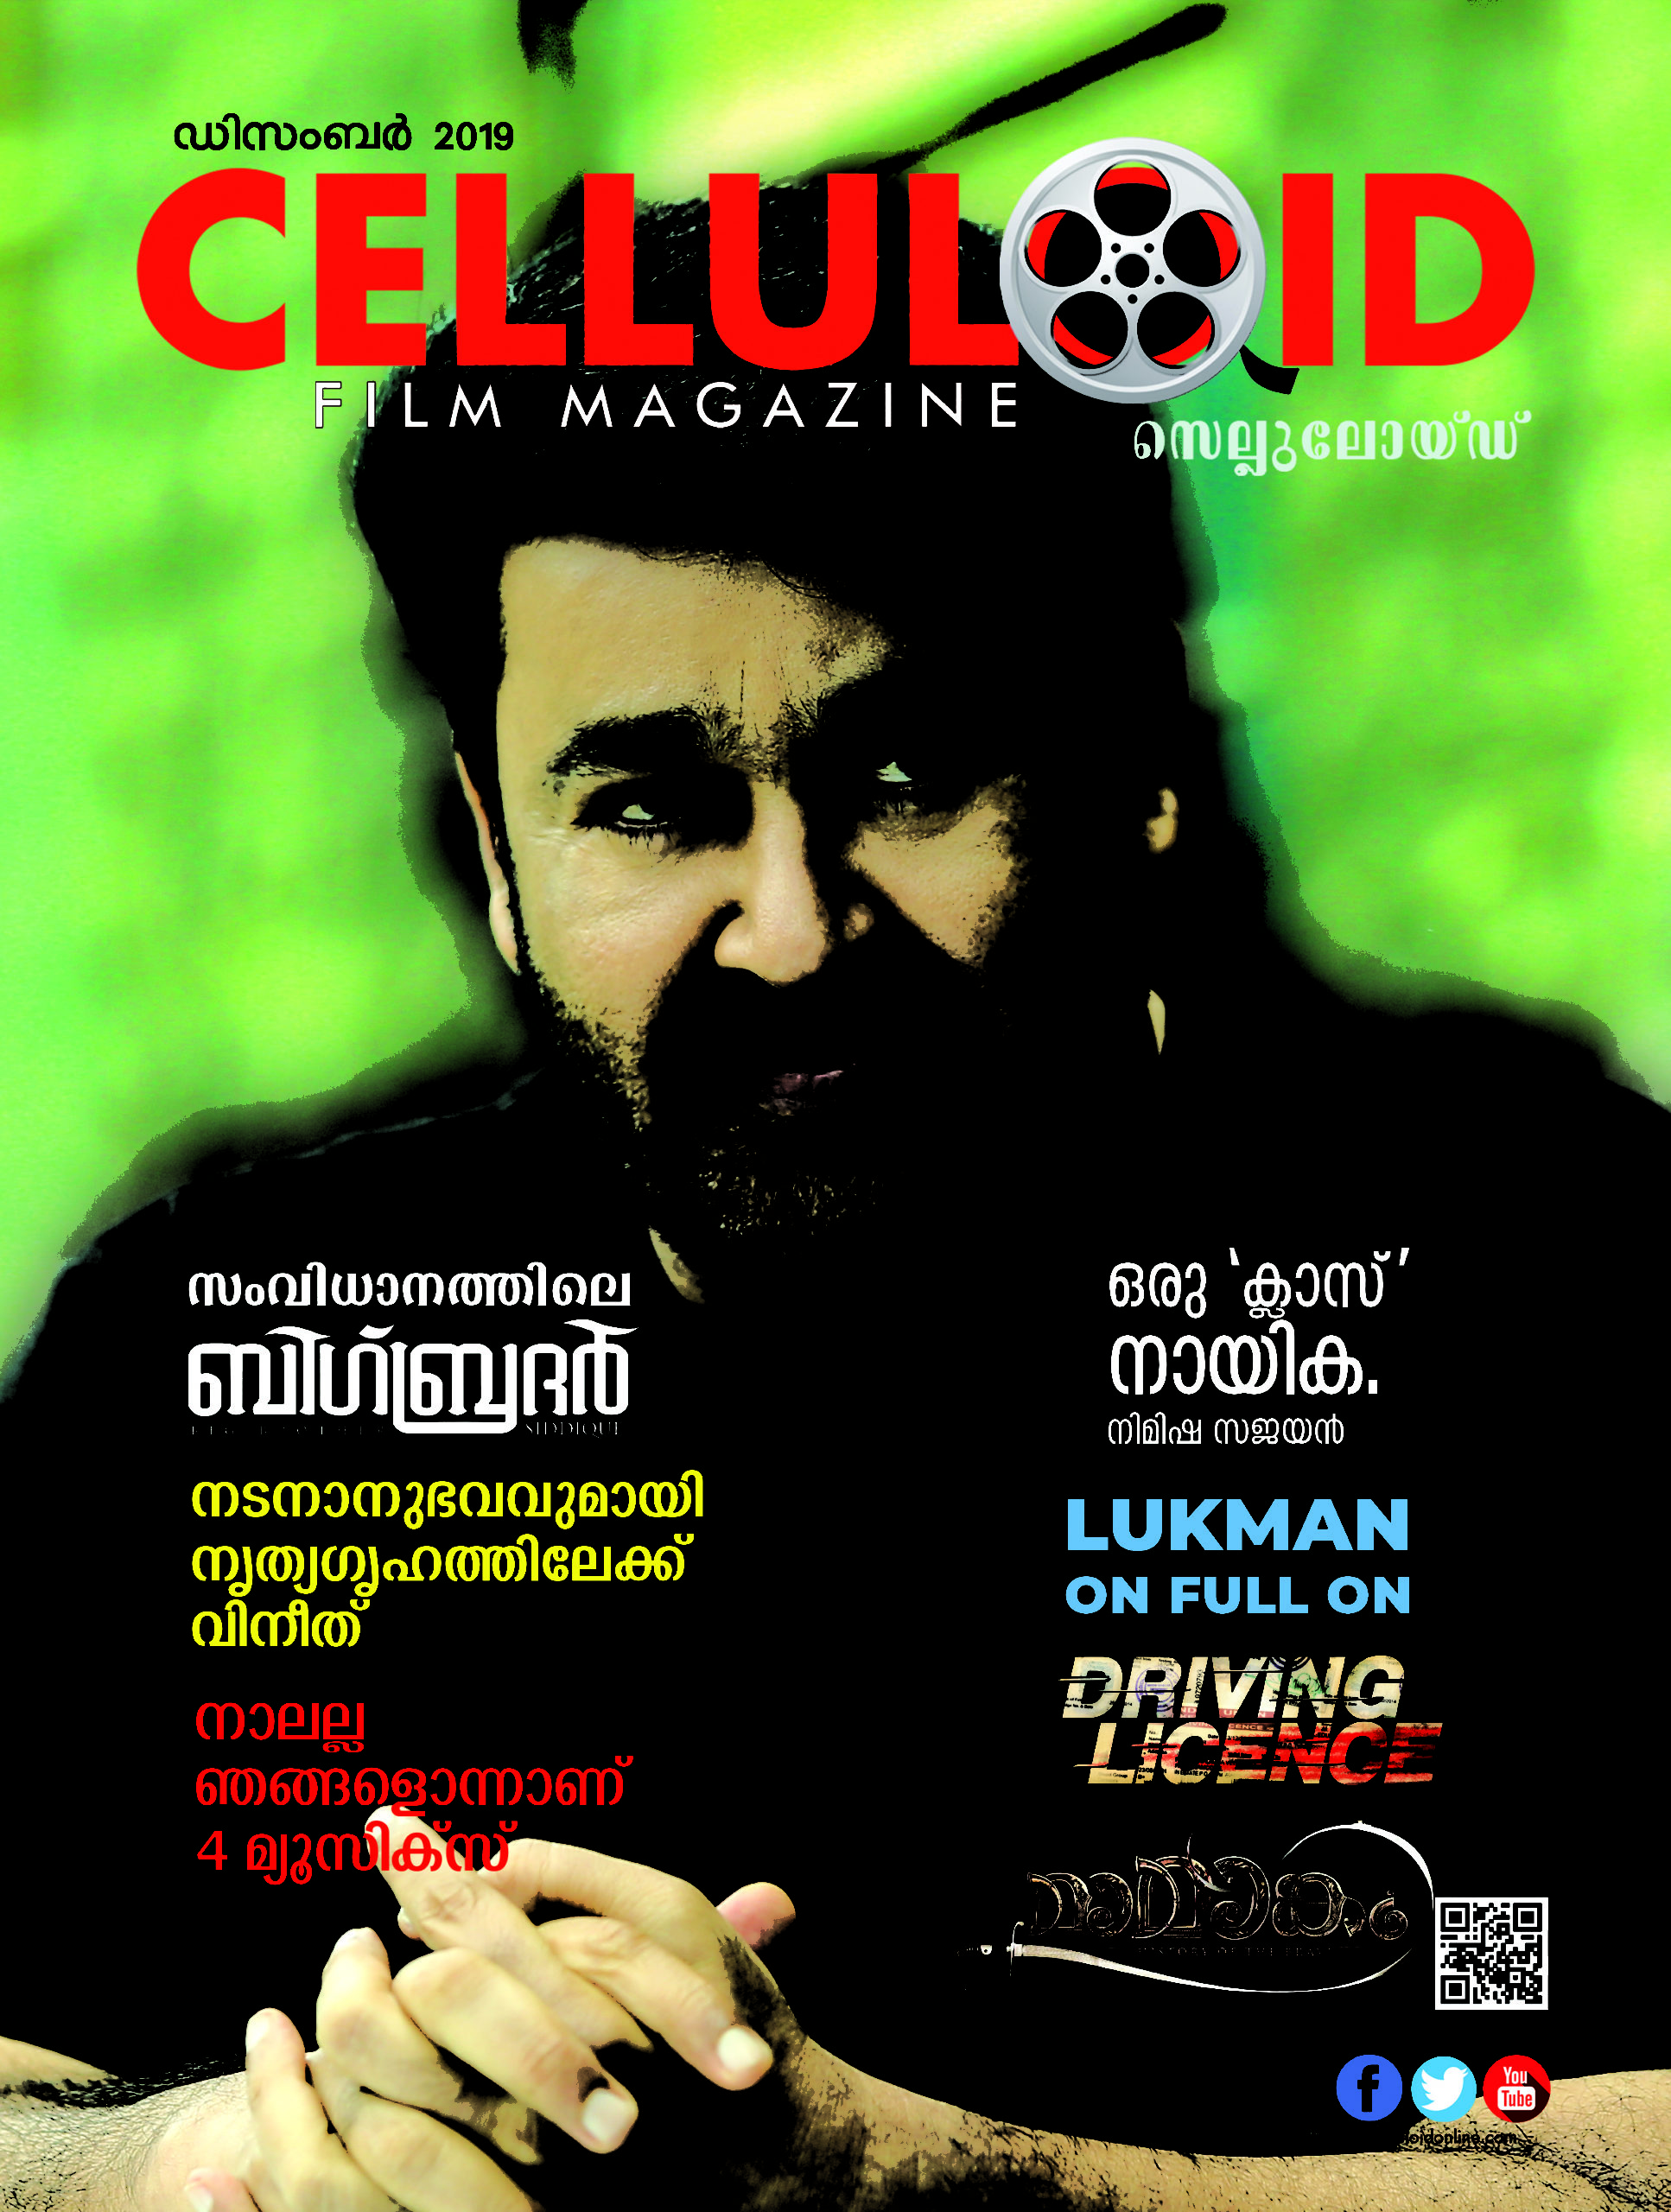 CELLULOID DECEMBER ISSUE